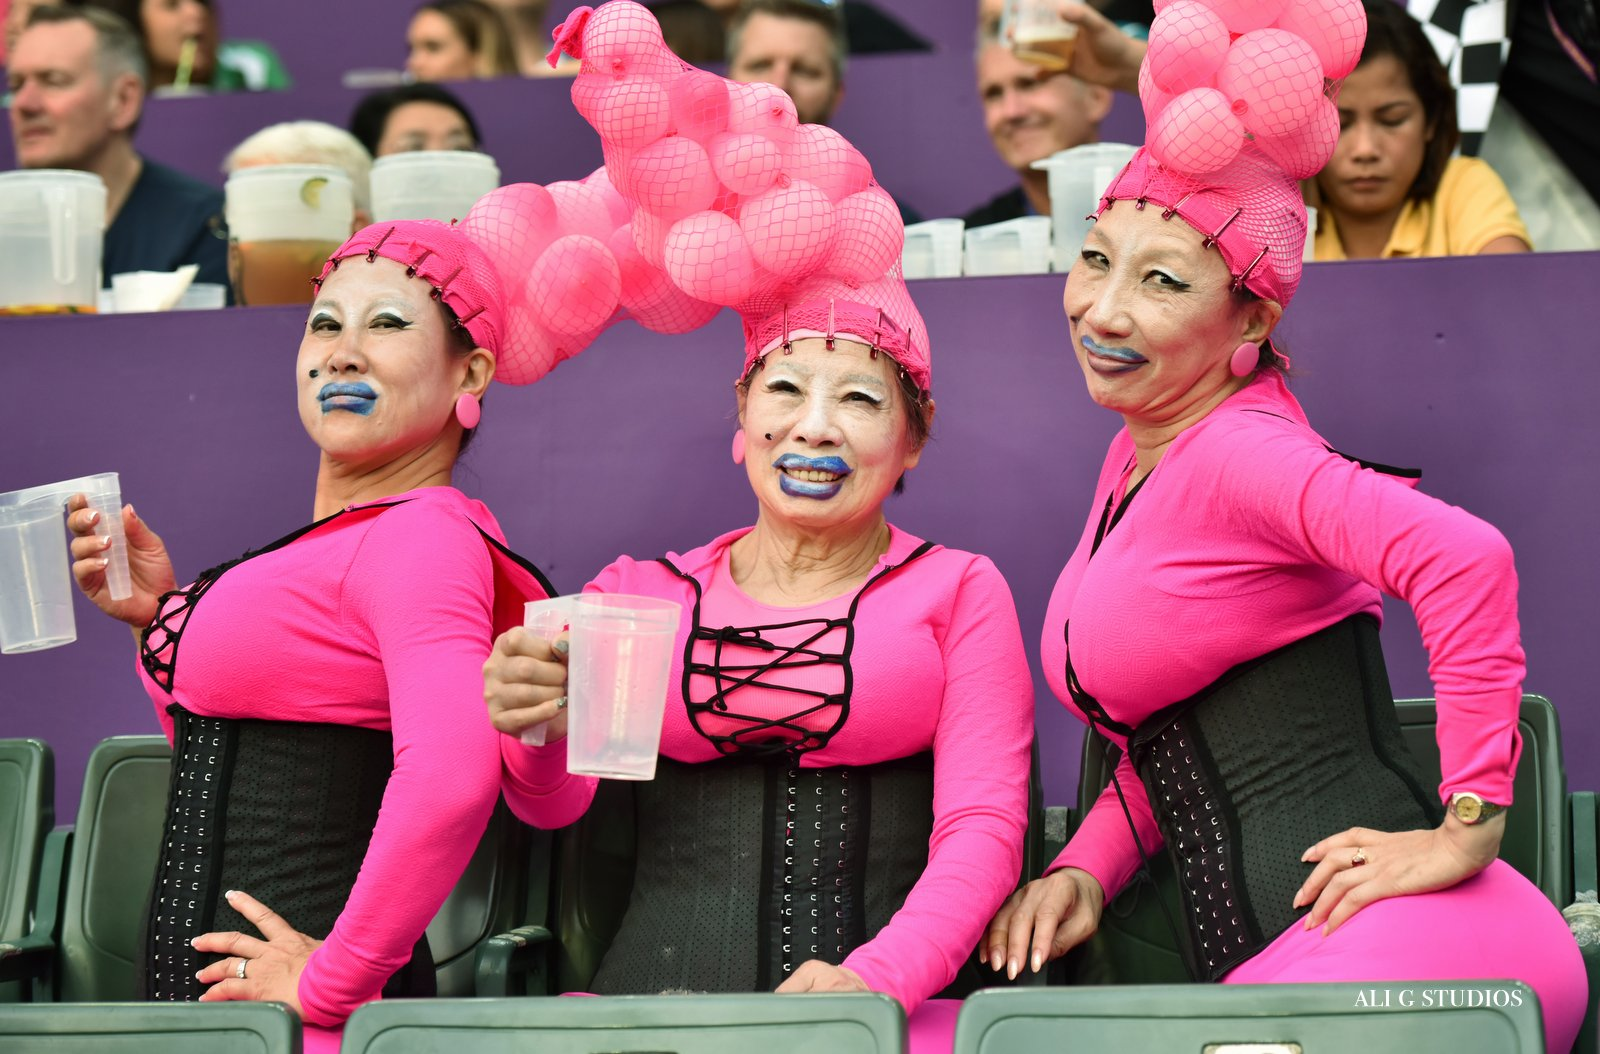 Three colorfully dressed fans at the Hong Kong 7's